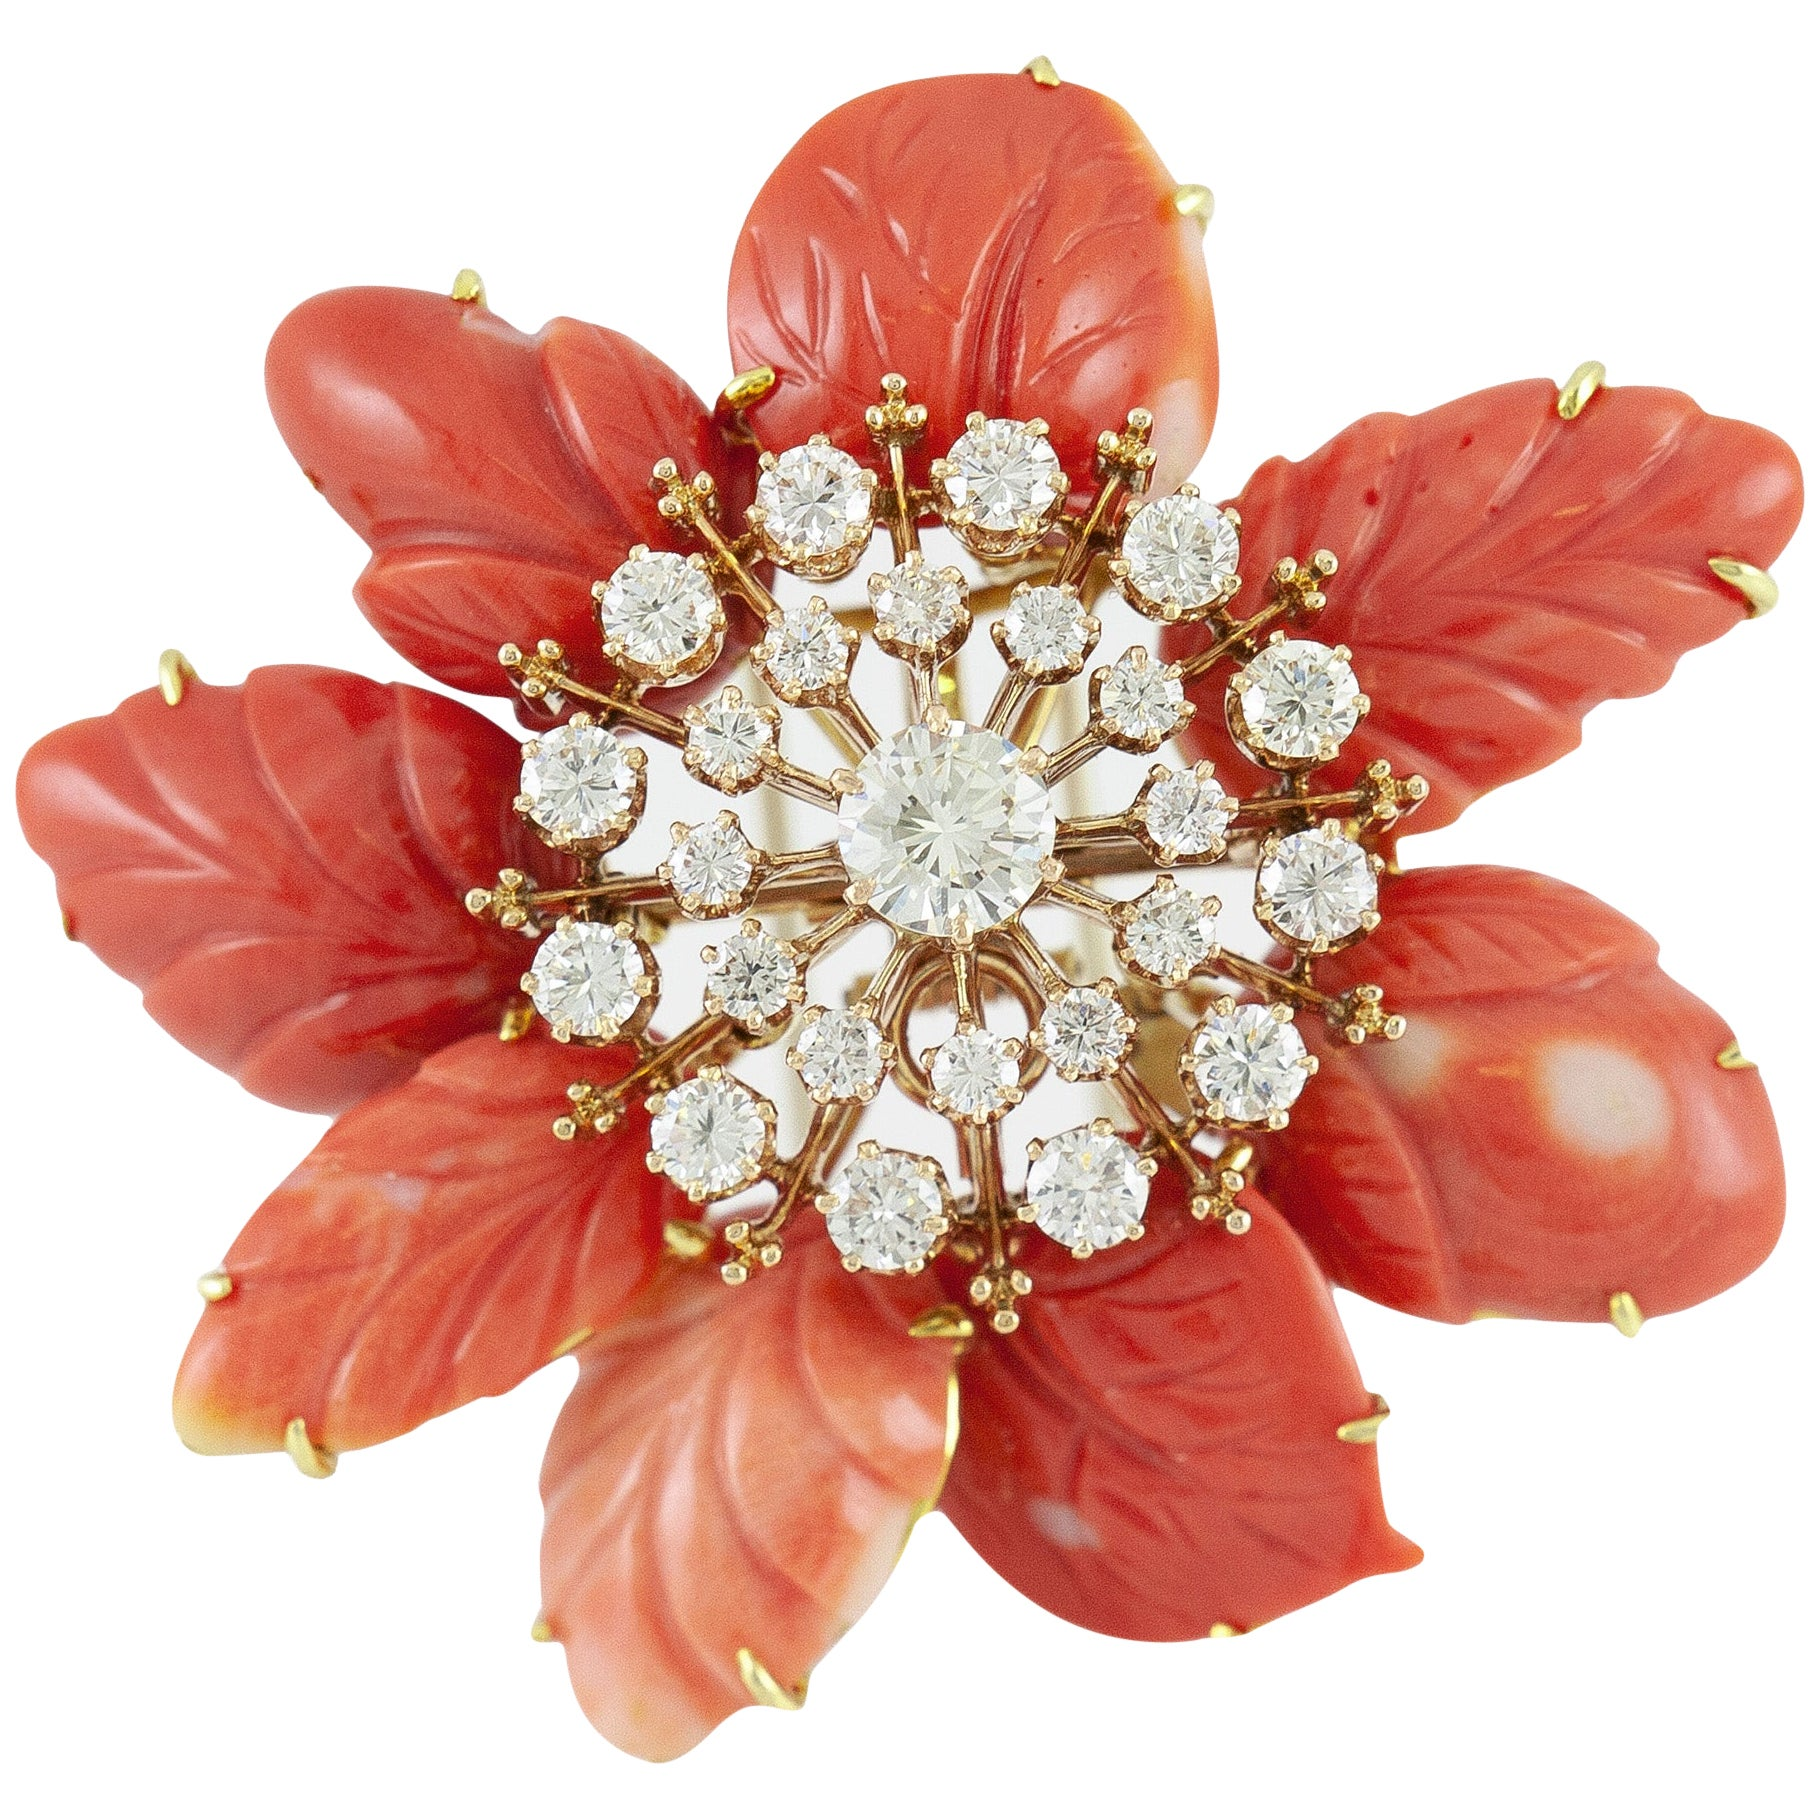 David Webb Carved Coral Flower Brooch with Diamonds